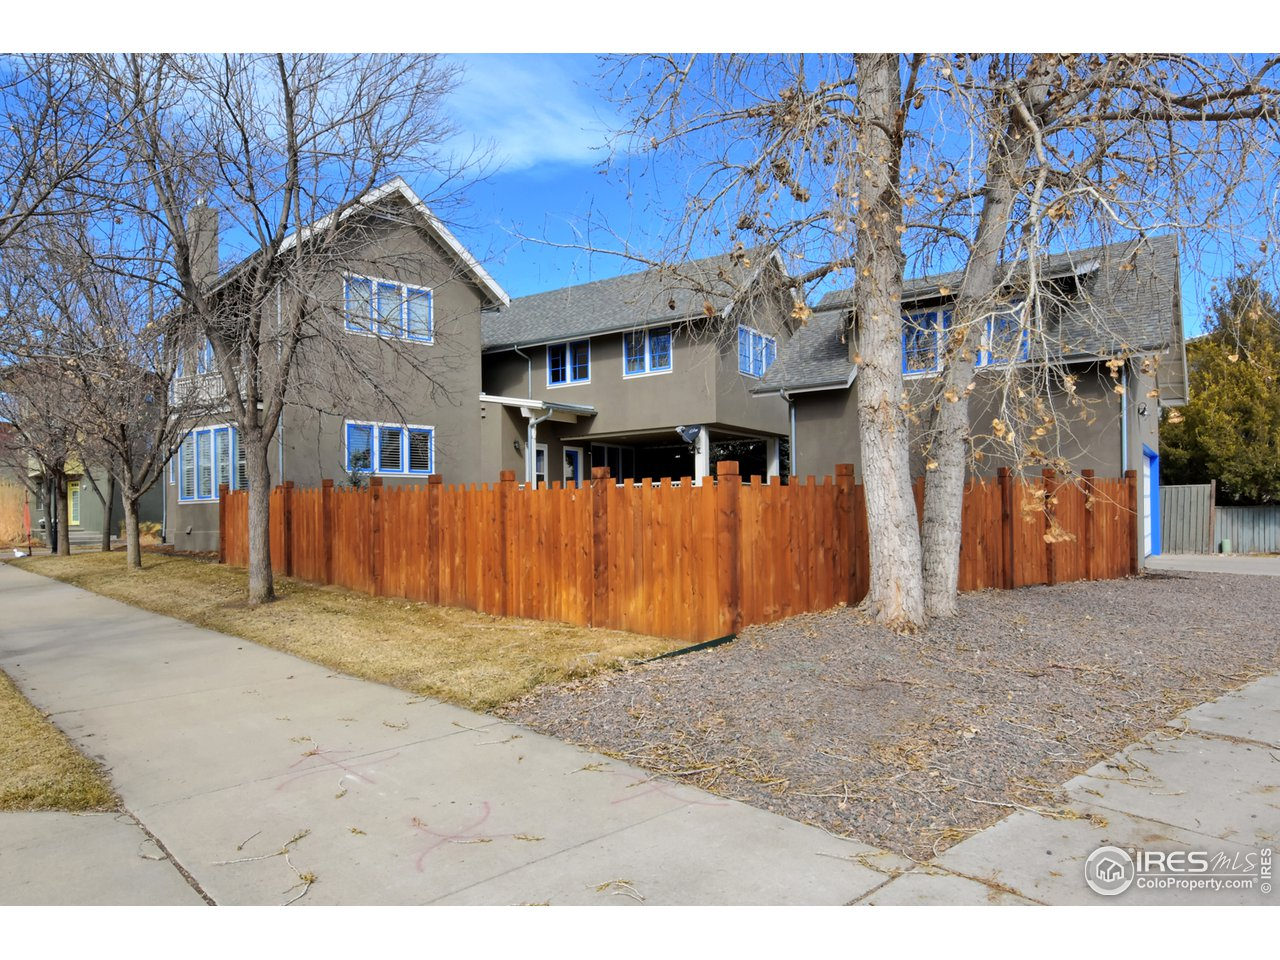 Prospect Living with Large Yard & Mature Trees